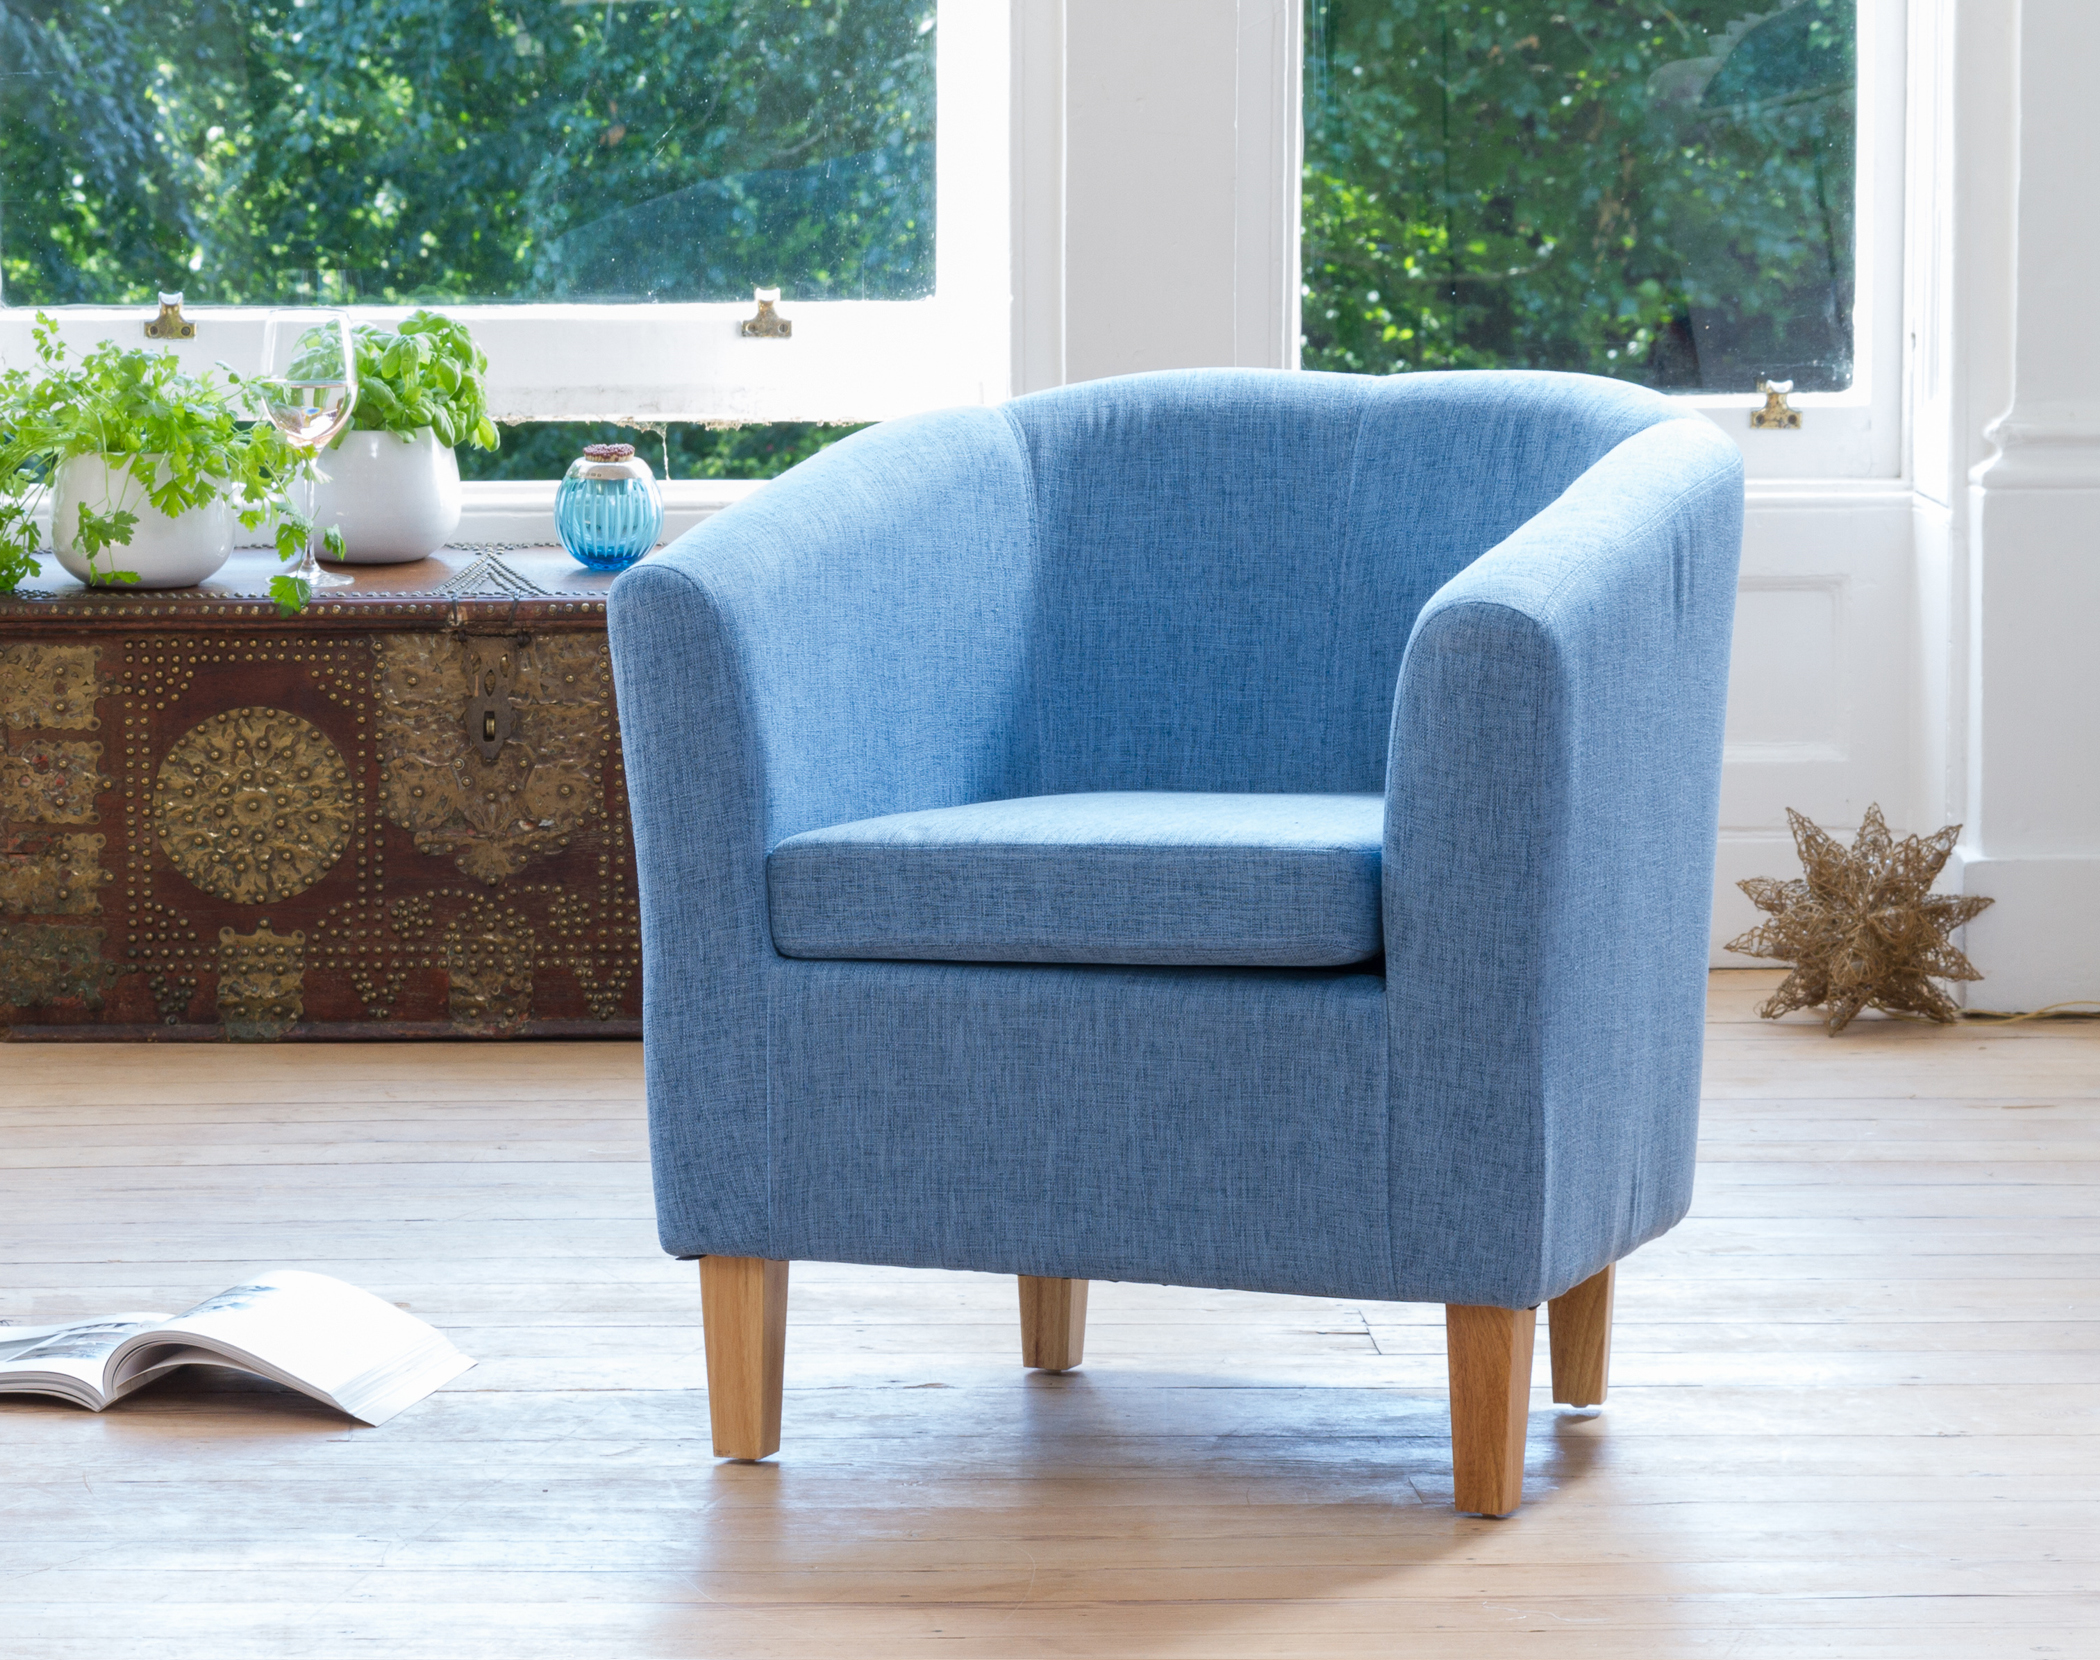 Clevedon Tub Chair blue